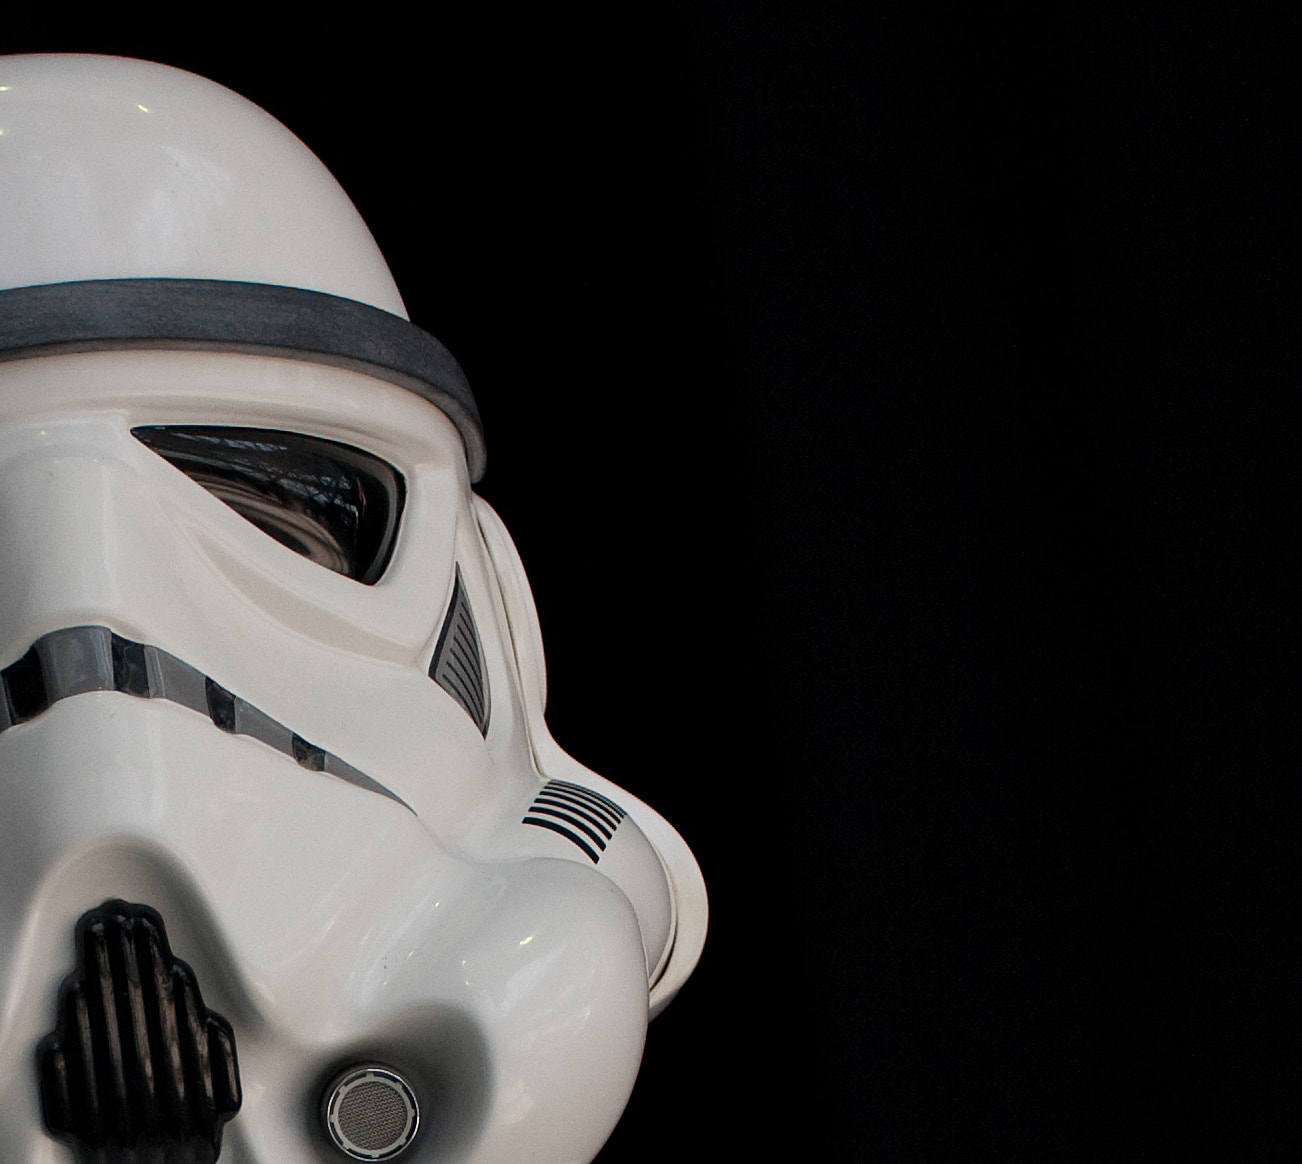 Photograph TROOPER by Aidan Minter on 500px